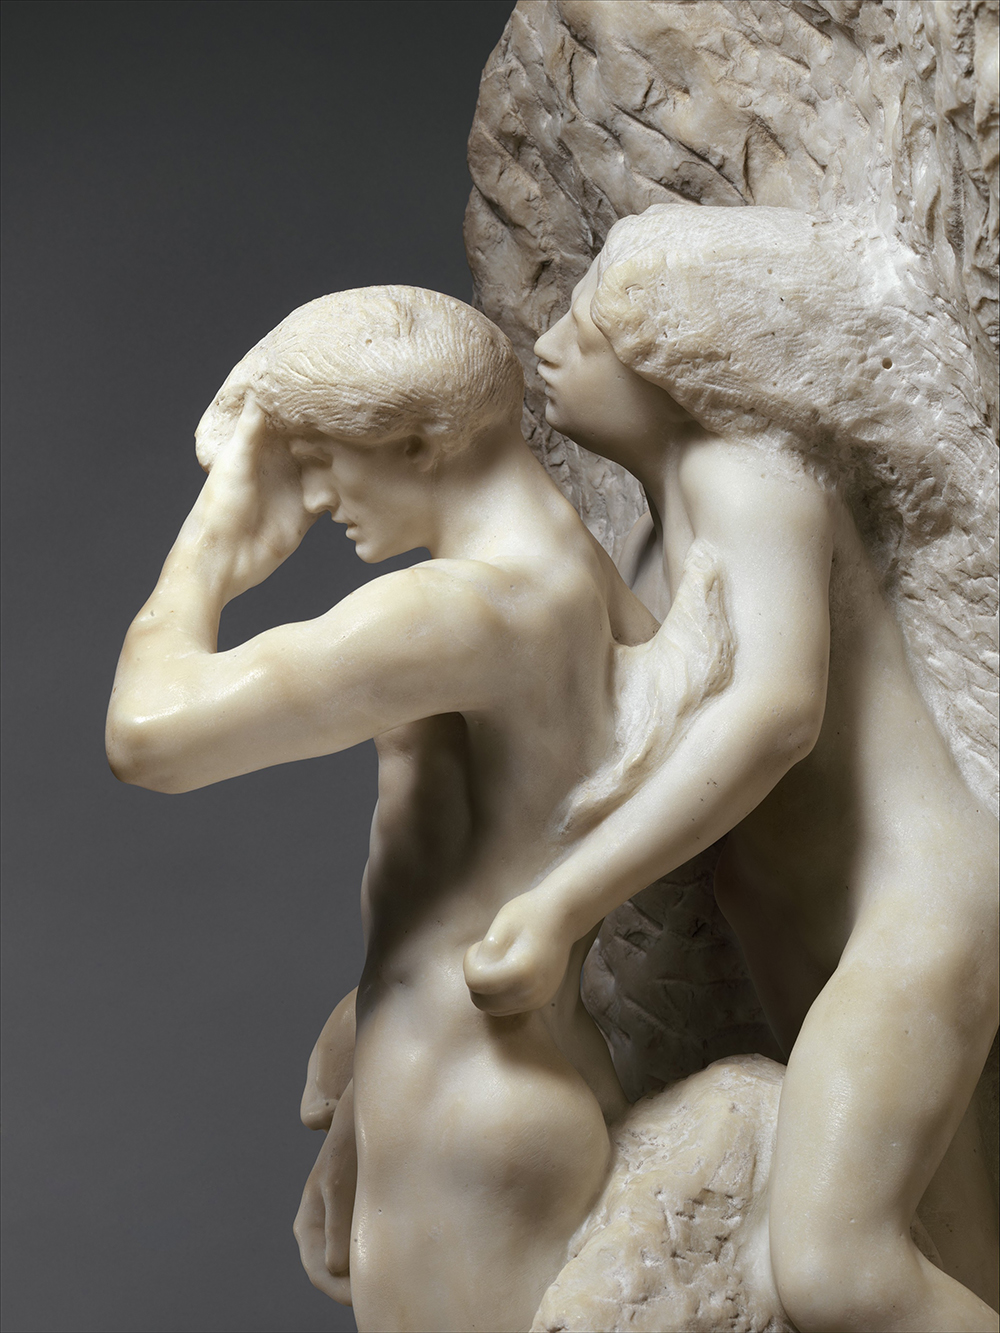 Orpheus and Eurydice (detail), by Augustus Rodin, The Metropolitan Museum of Art, Gift of Thomas F. Ryan, 1910.